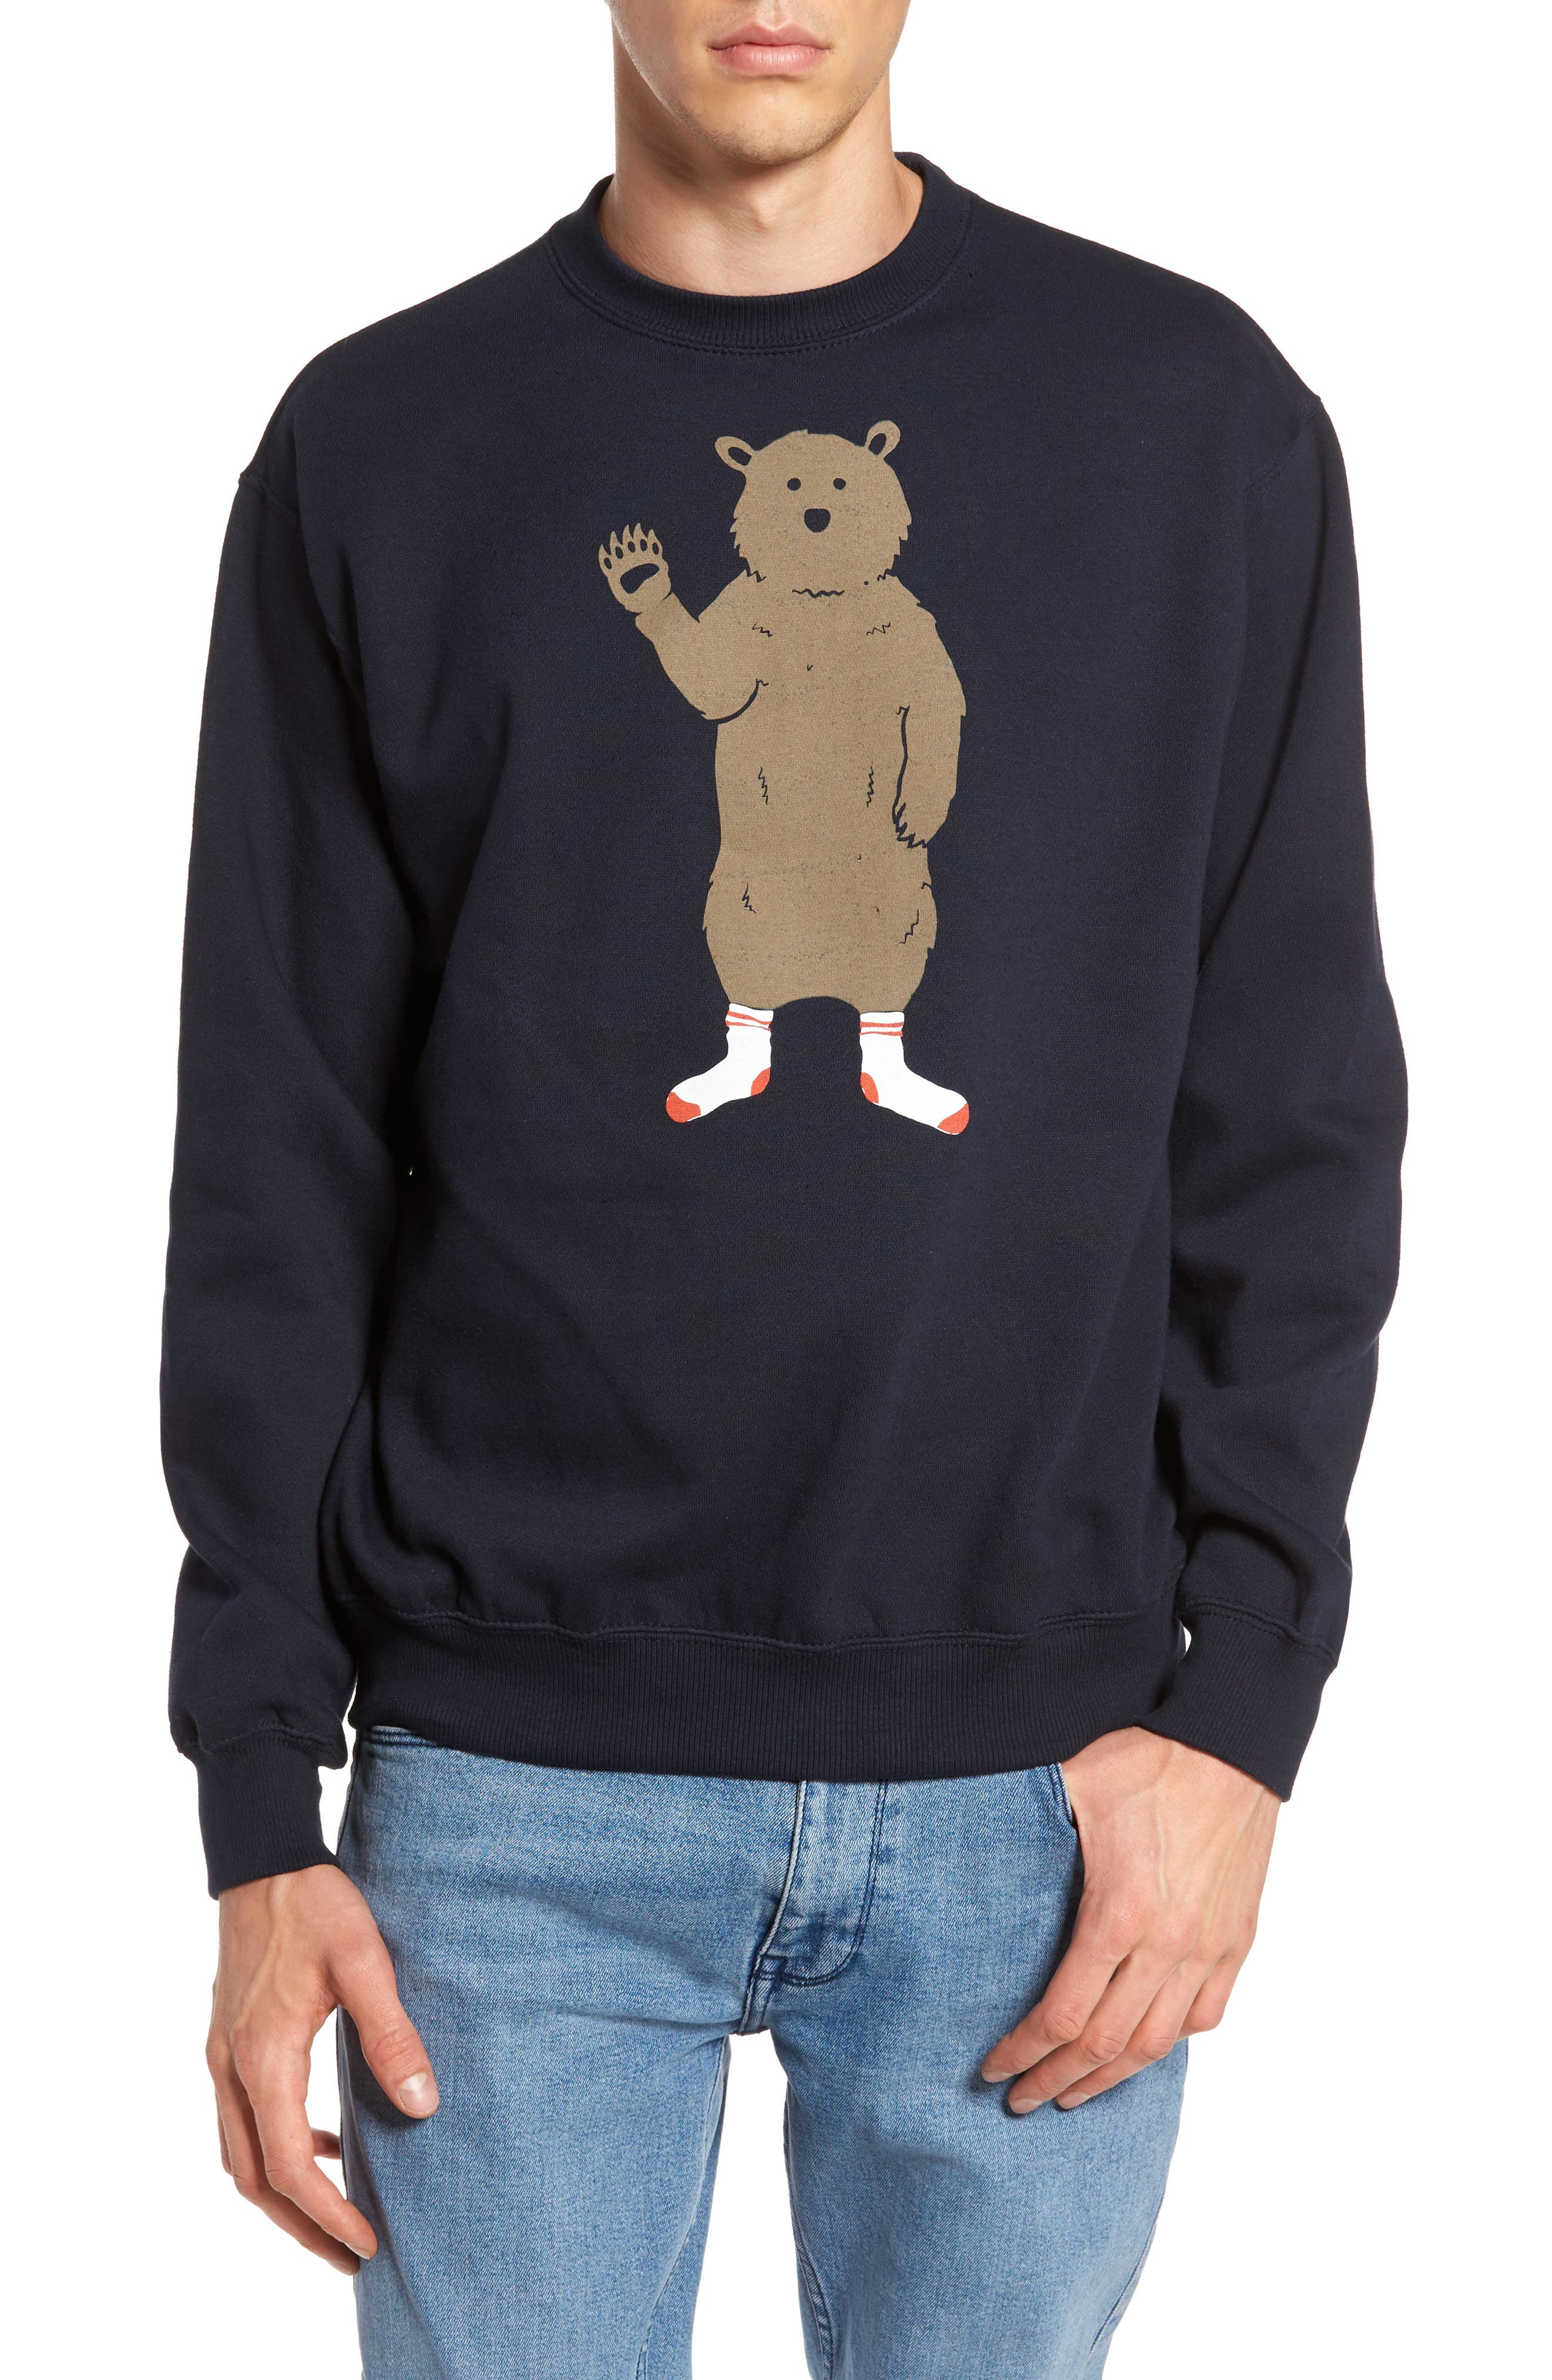 Bear in Socks Sweatshirt,                             Main thumbnail 1, color,                             Navy